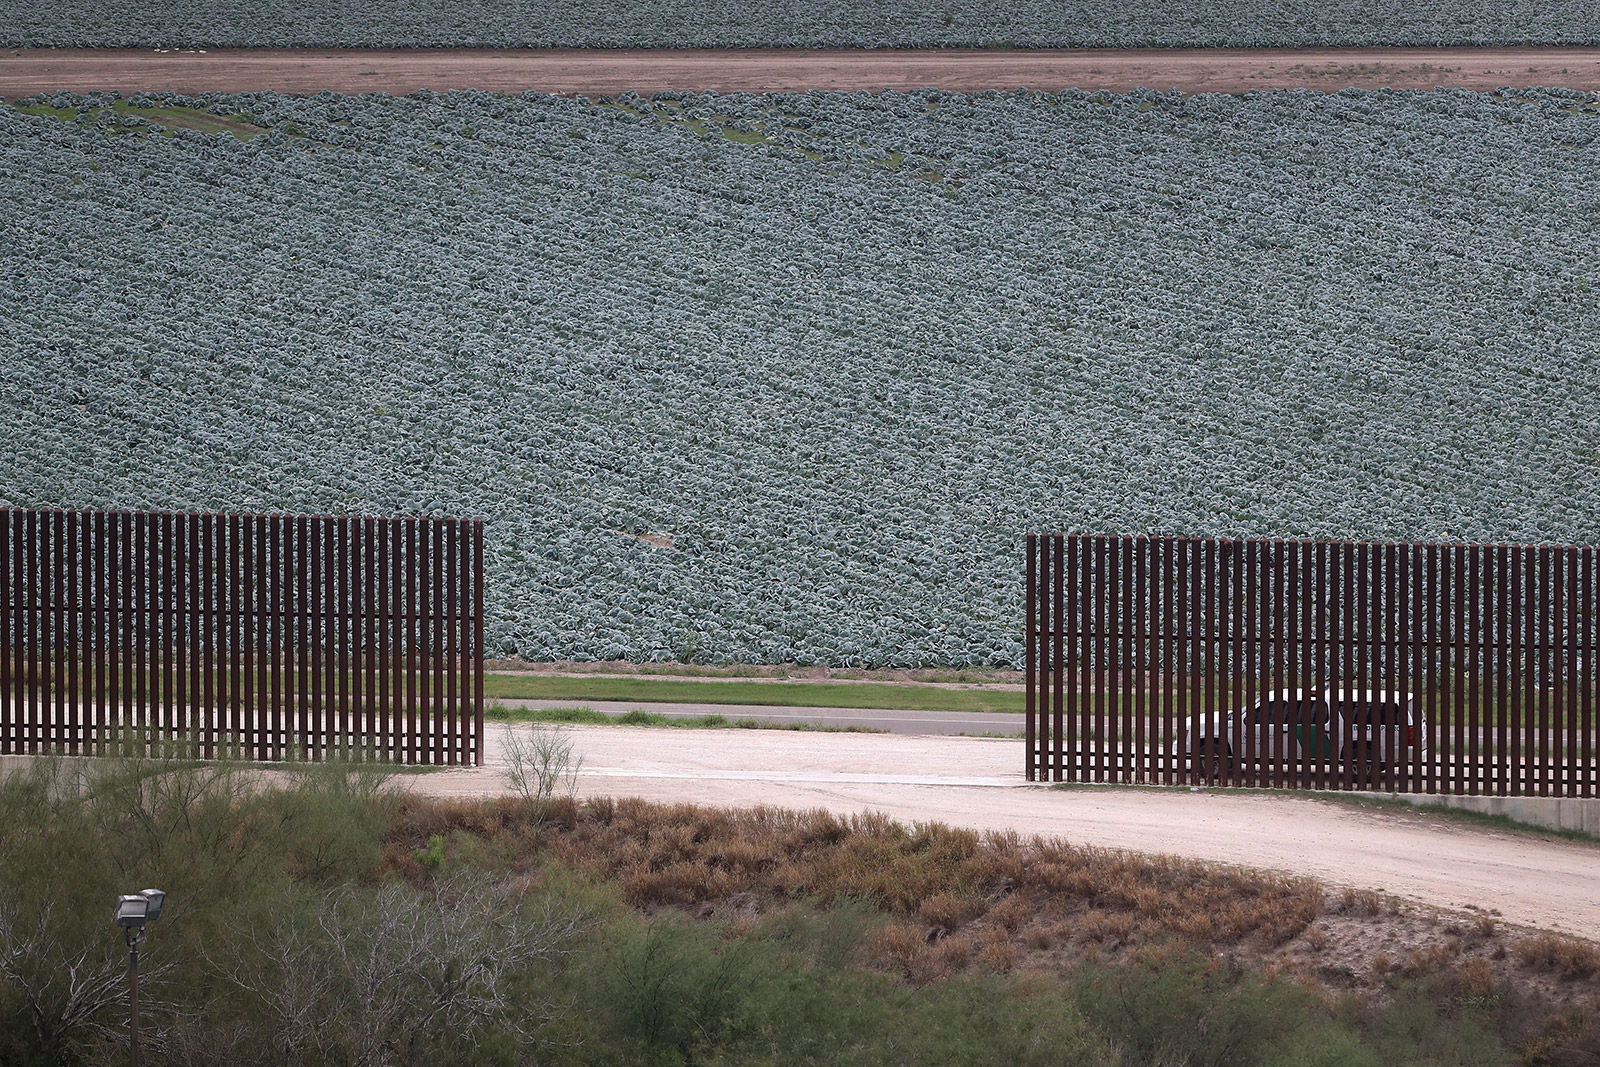 This is what the US-Mexico border looks like - CNN.com